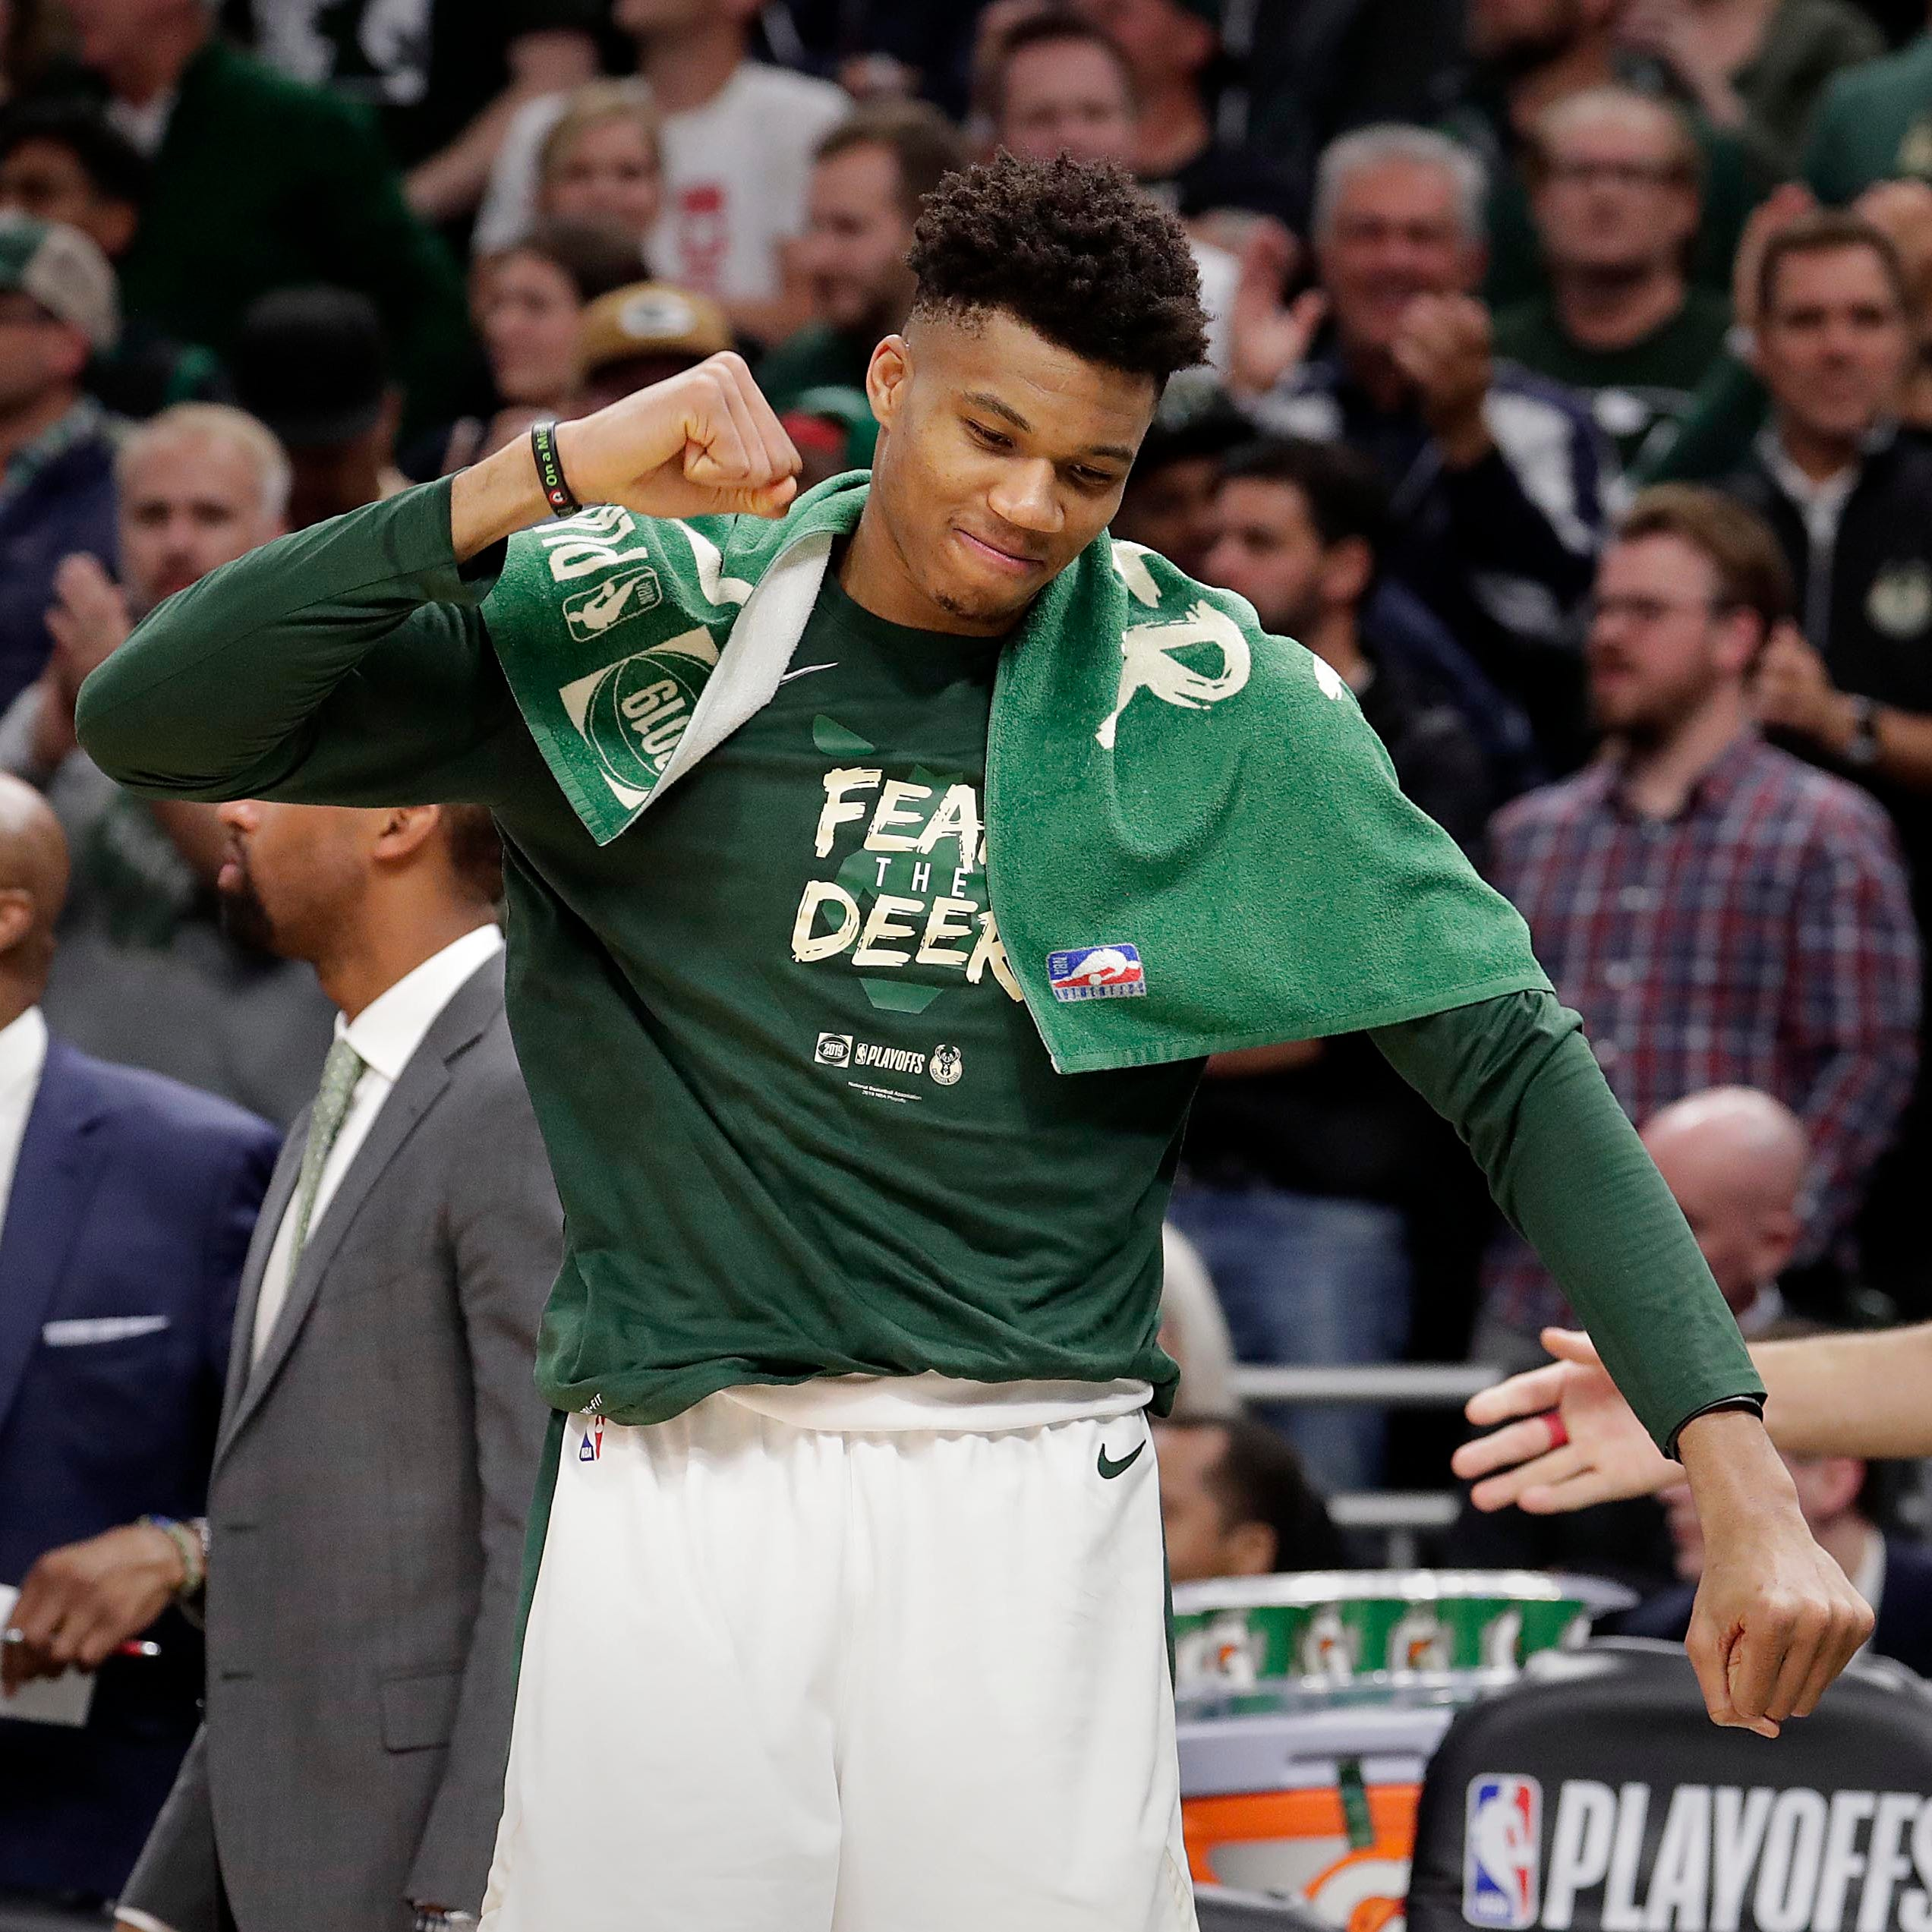 The Bucks' opponent in the conference finals is still to be determined, but the schedule is set